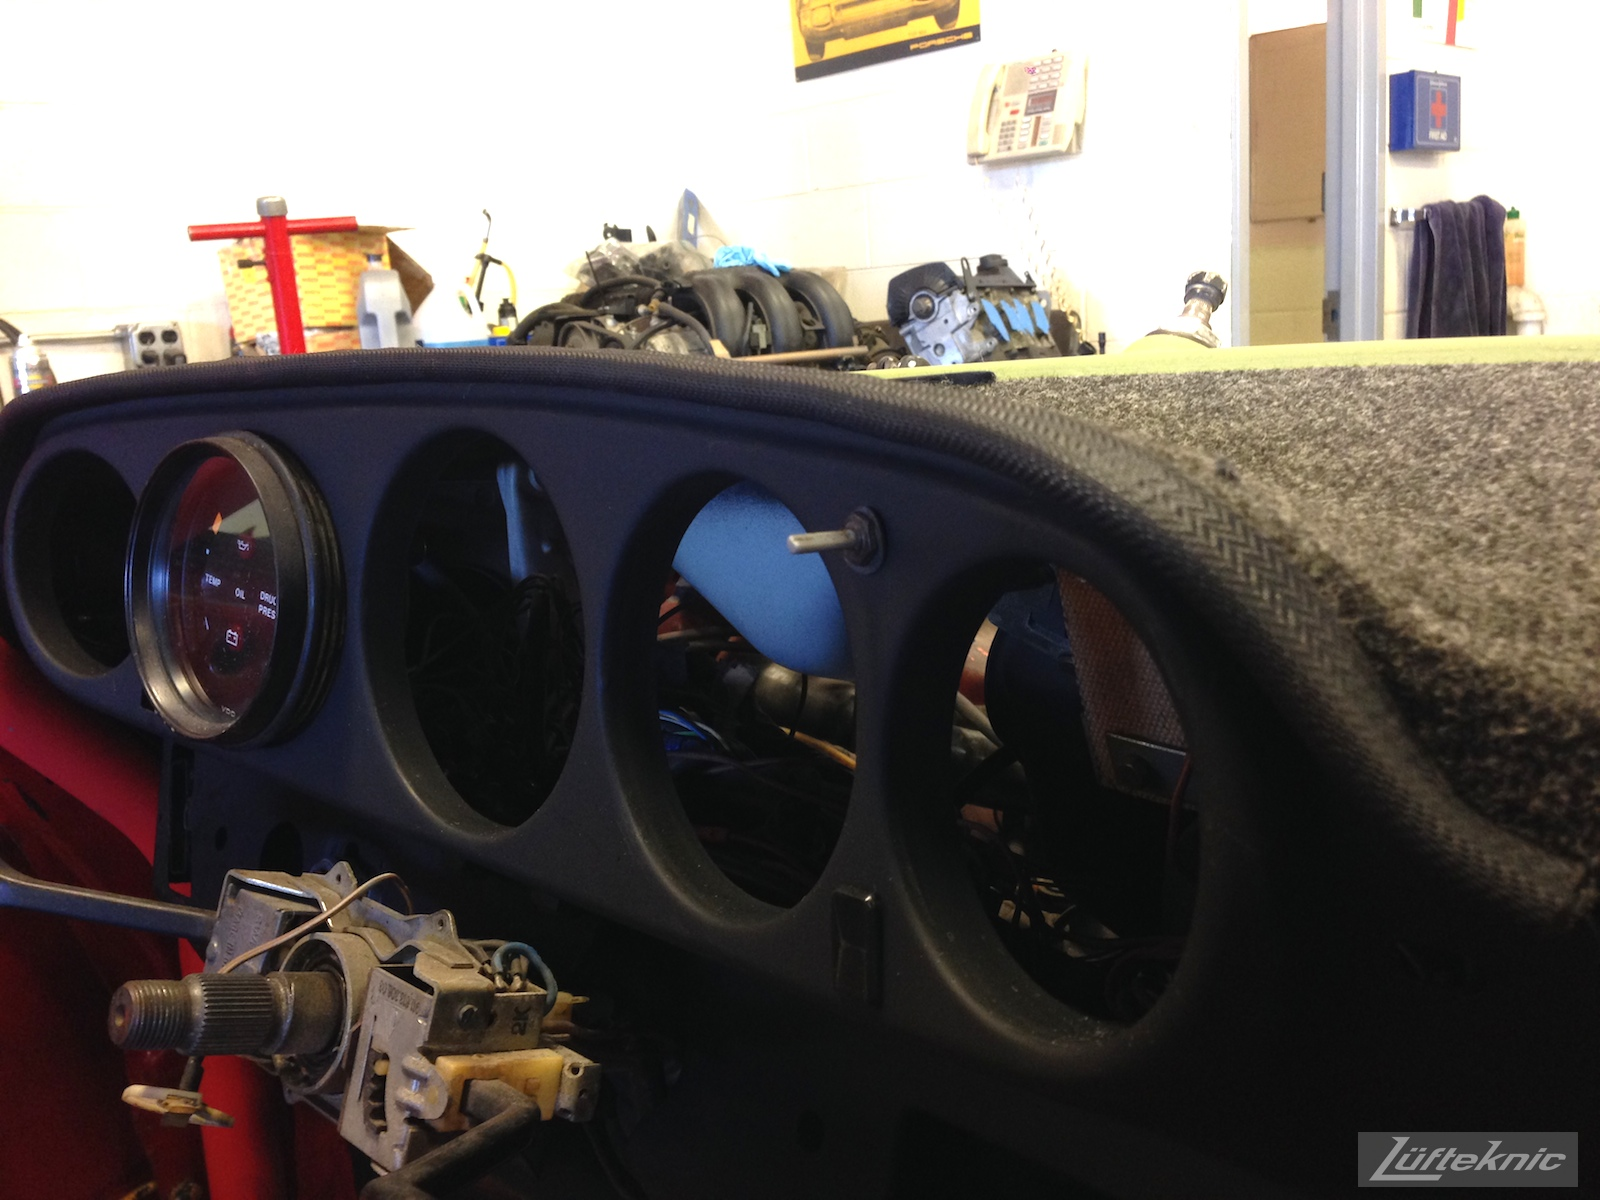 Lüfteknic #projectstuka Porsche 930 Turbo dash board with trim close up